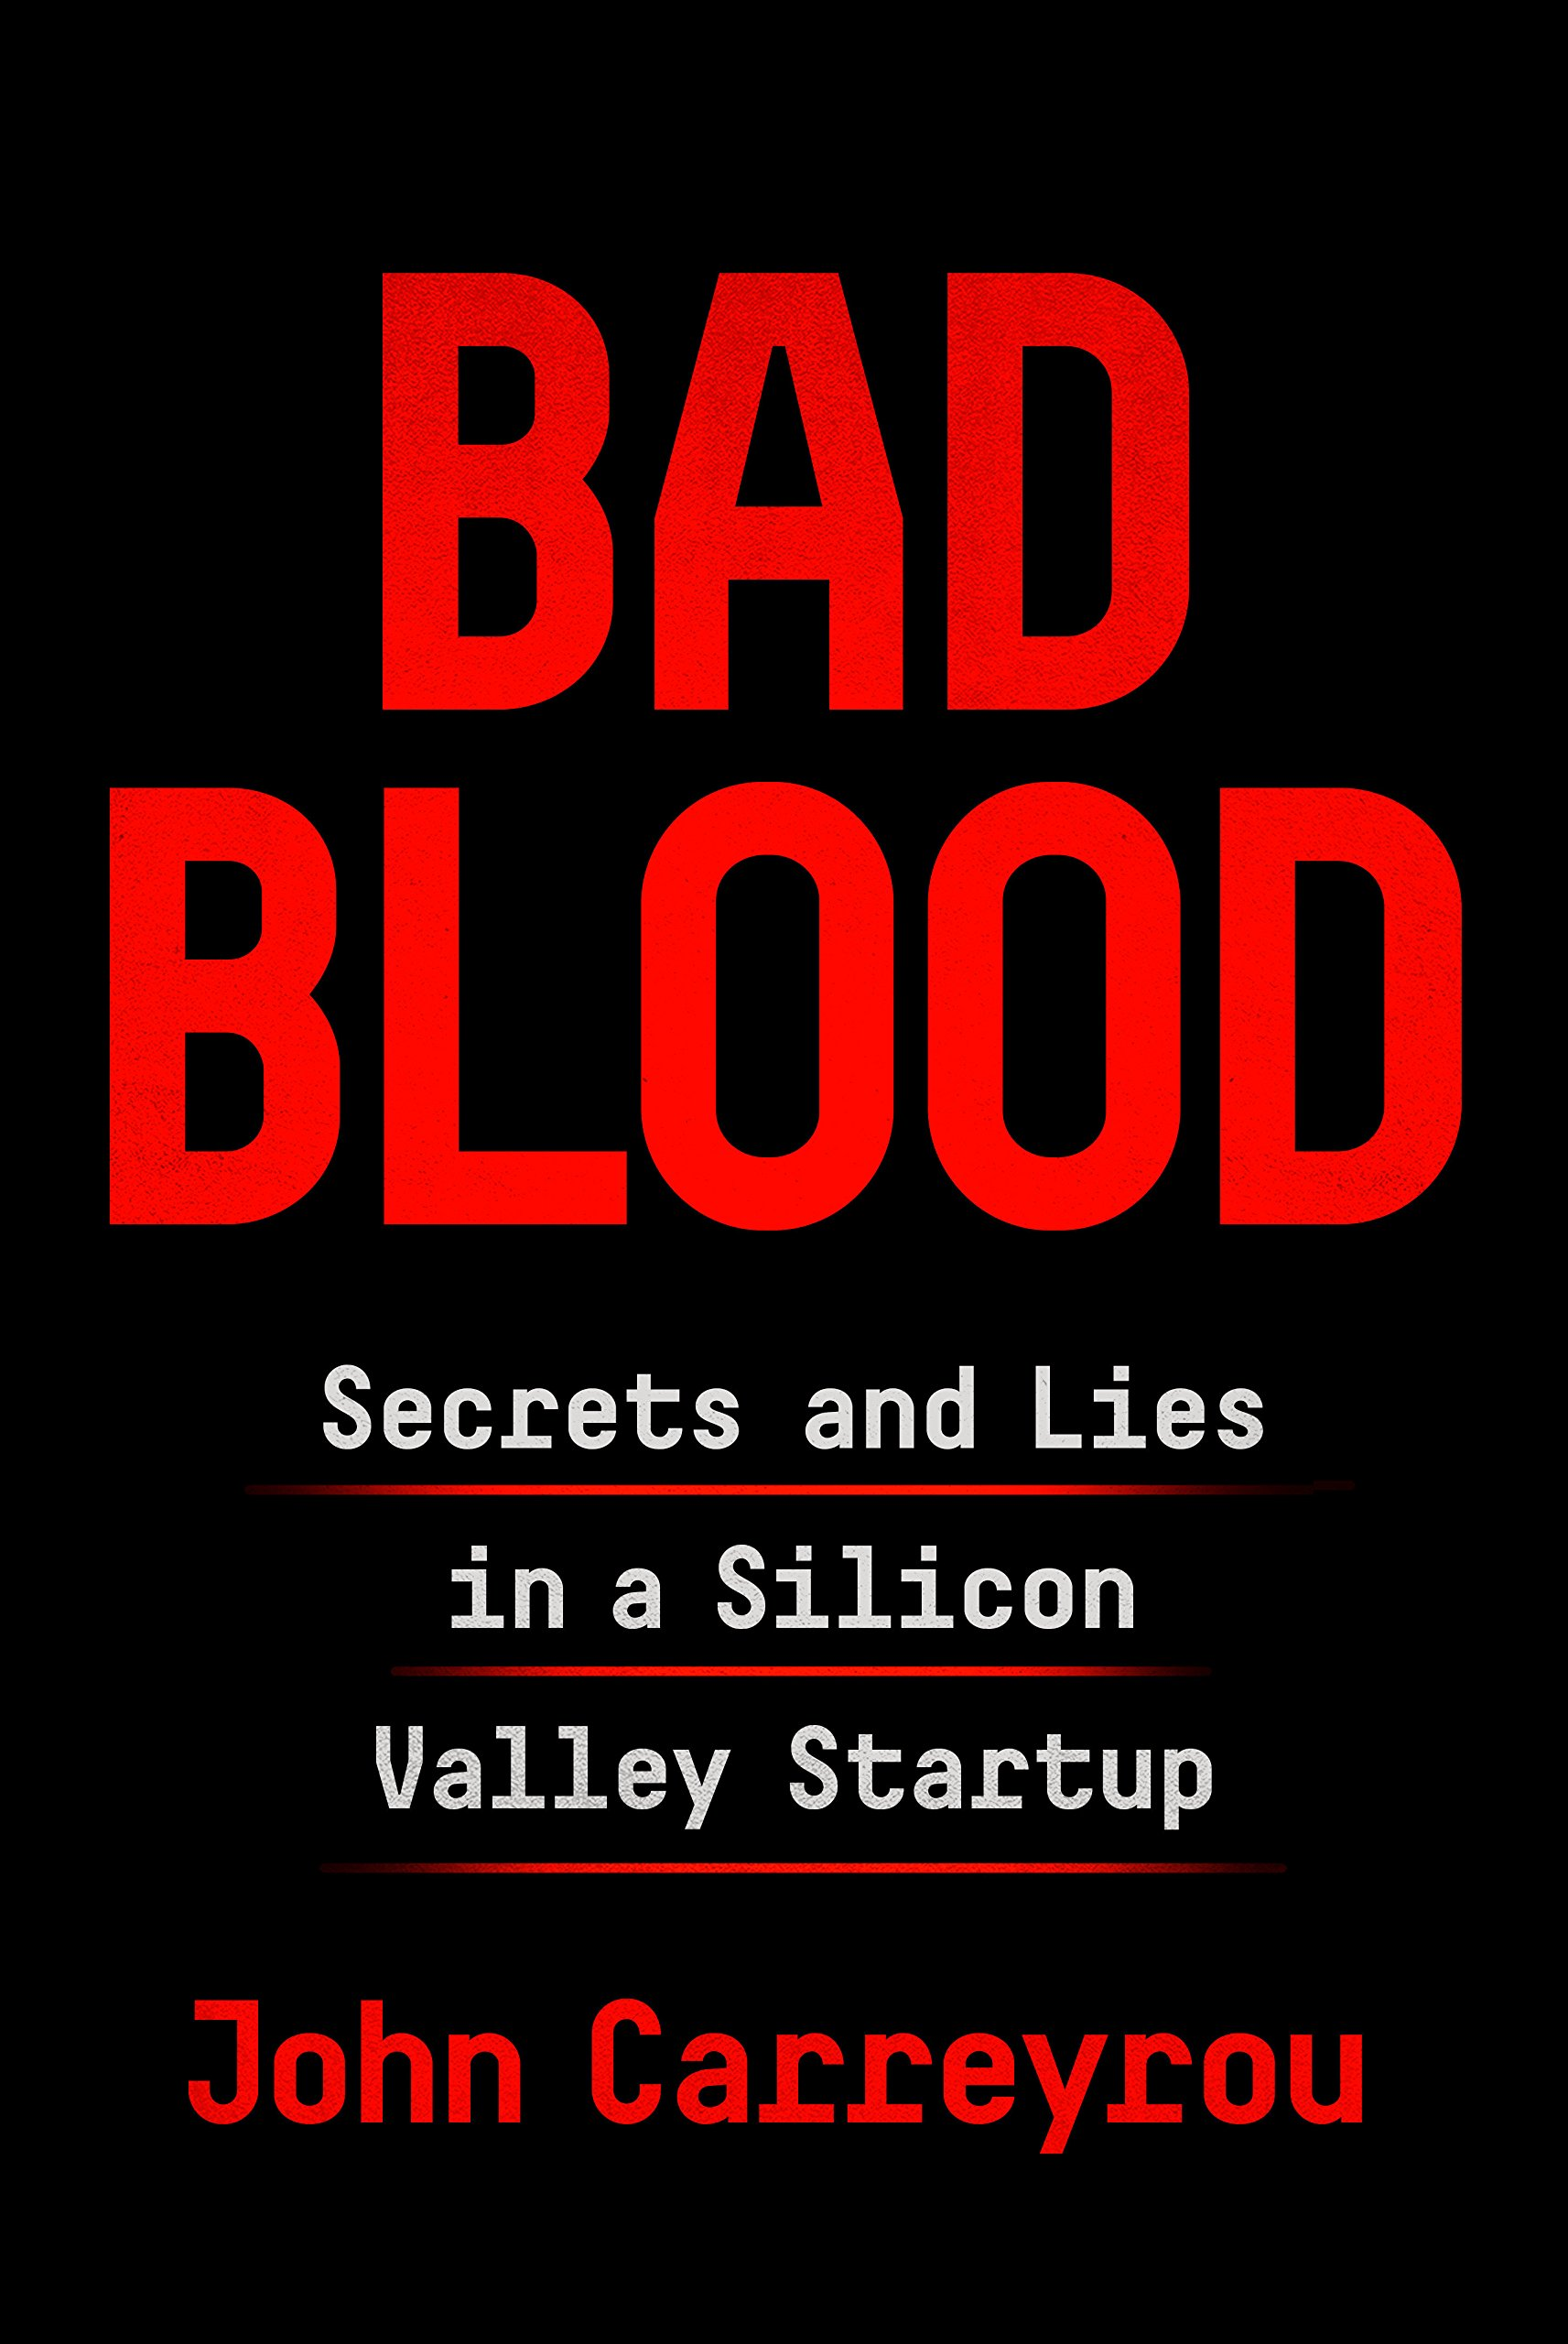 """In 2014, Theranos founder and CEO Elizabeth Holmes was widely seen as the female Steve Jobs: a brilliant Stanford dropout whose startup """"unicorn"""" promised to revolutionize the medical industry with a machine that would make blood testing significantly faster and easier. Backed by investors such as Larry Ellison and Tim Draper, Theranos sold shares in a fundraising round that valued the company at more than $9 billion, putting Holmes's worth at an estimated $4.7 billion. There was just one problem: The technology didn't work.  A riveting story of the biggest corporate fraud since Enron, a tale of ambition and hubris set amid the bold promises of Silicon Valley."""